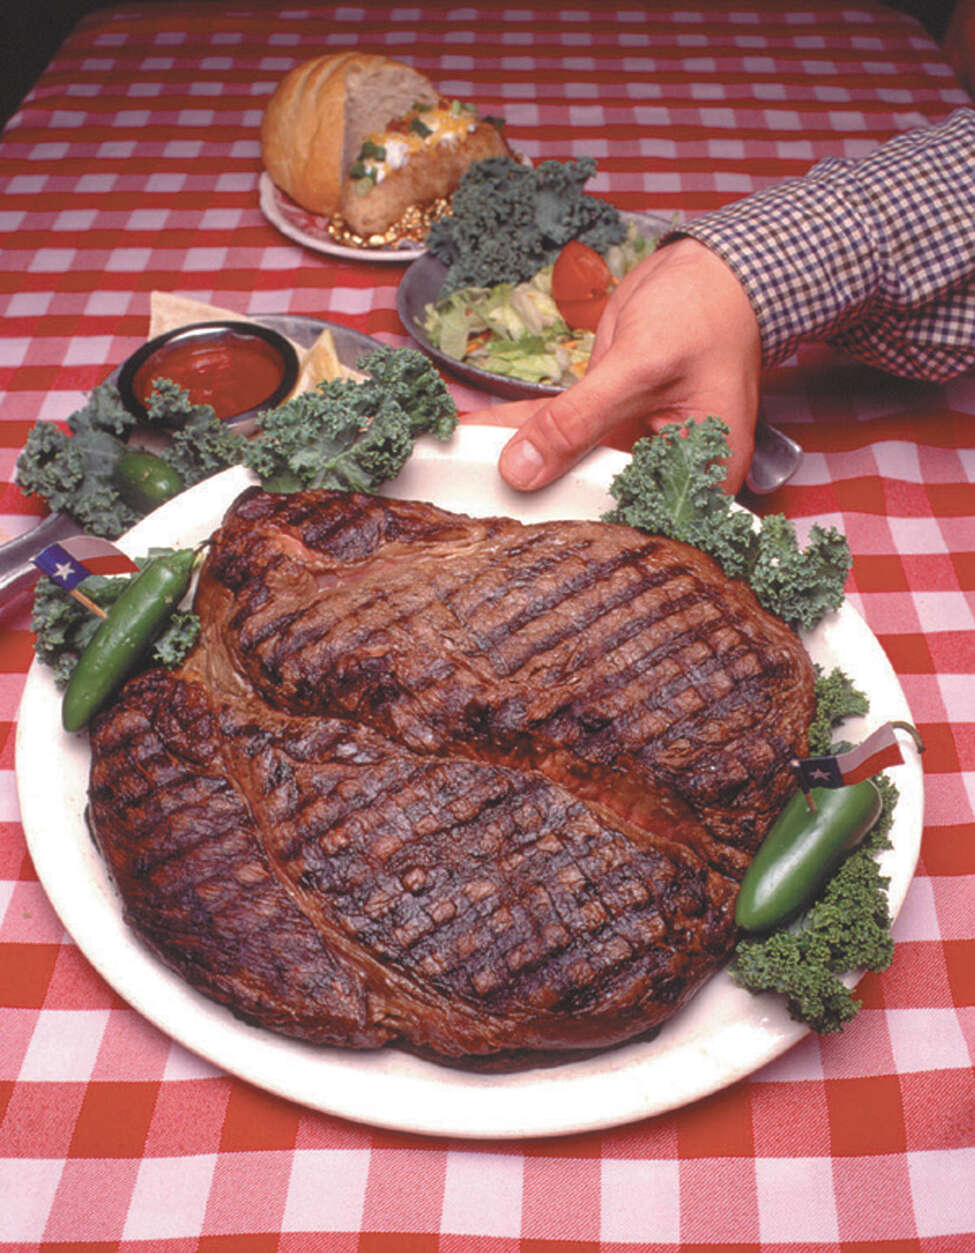 If you can eat the 72-ounce steak at the Big Texan restaurant in Amarillo in one hour, it's free. Not many succeed, but a competitive eater from Nebraska has set a record by devouring two of the huge steaks. Still hungry? While they aren't all record-breaking, click ahead to see more dishes in the Alamo City, Texas and around the globe that will fill you up ... and then some.